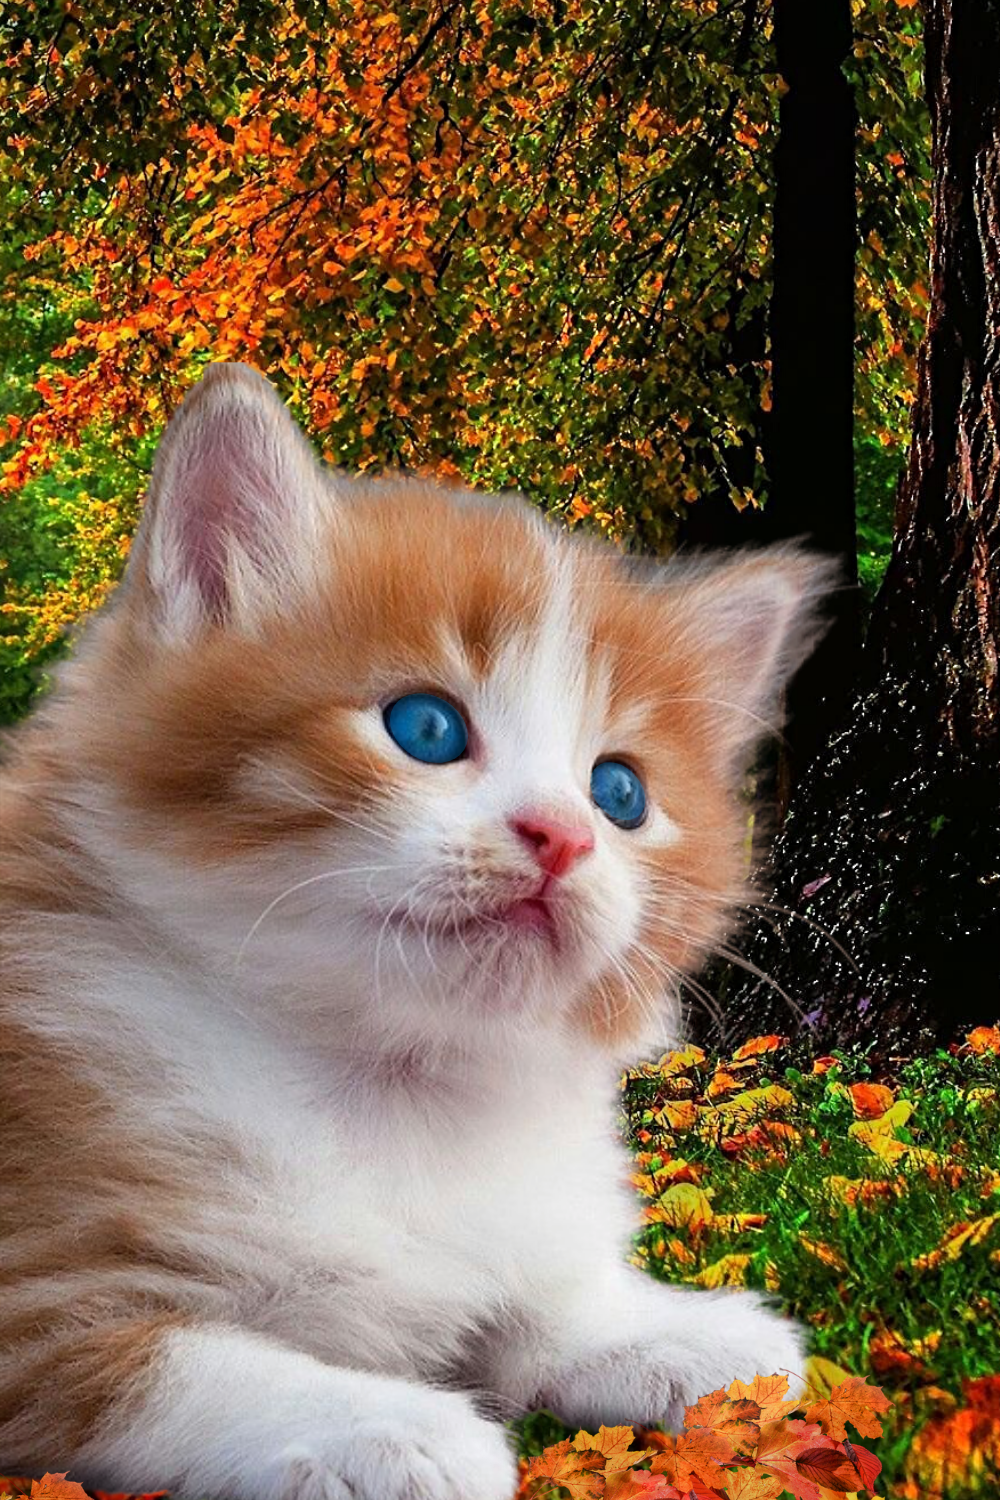 Shiner In 2020 Kittens Cutest Beautiful Kittens Cute Cats And Kittens